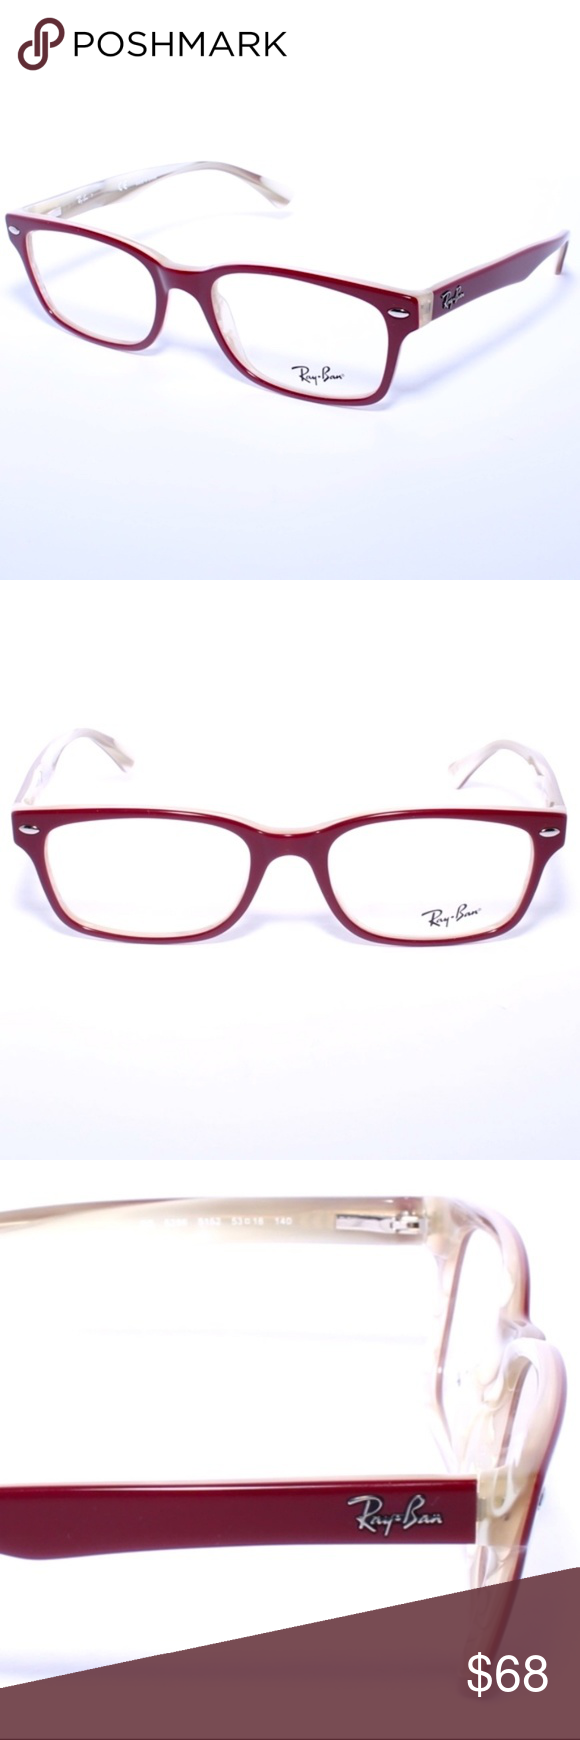 3572003809d35 Ray Ban RB 5286 5152 Burgundy Beige 53mm Frames Brand New 100% Authentic Ray  Ban RB 5286 5152 Burgundy Beige 53mm Frames Eyeglasses RX Comes with  Generic ...